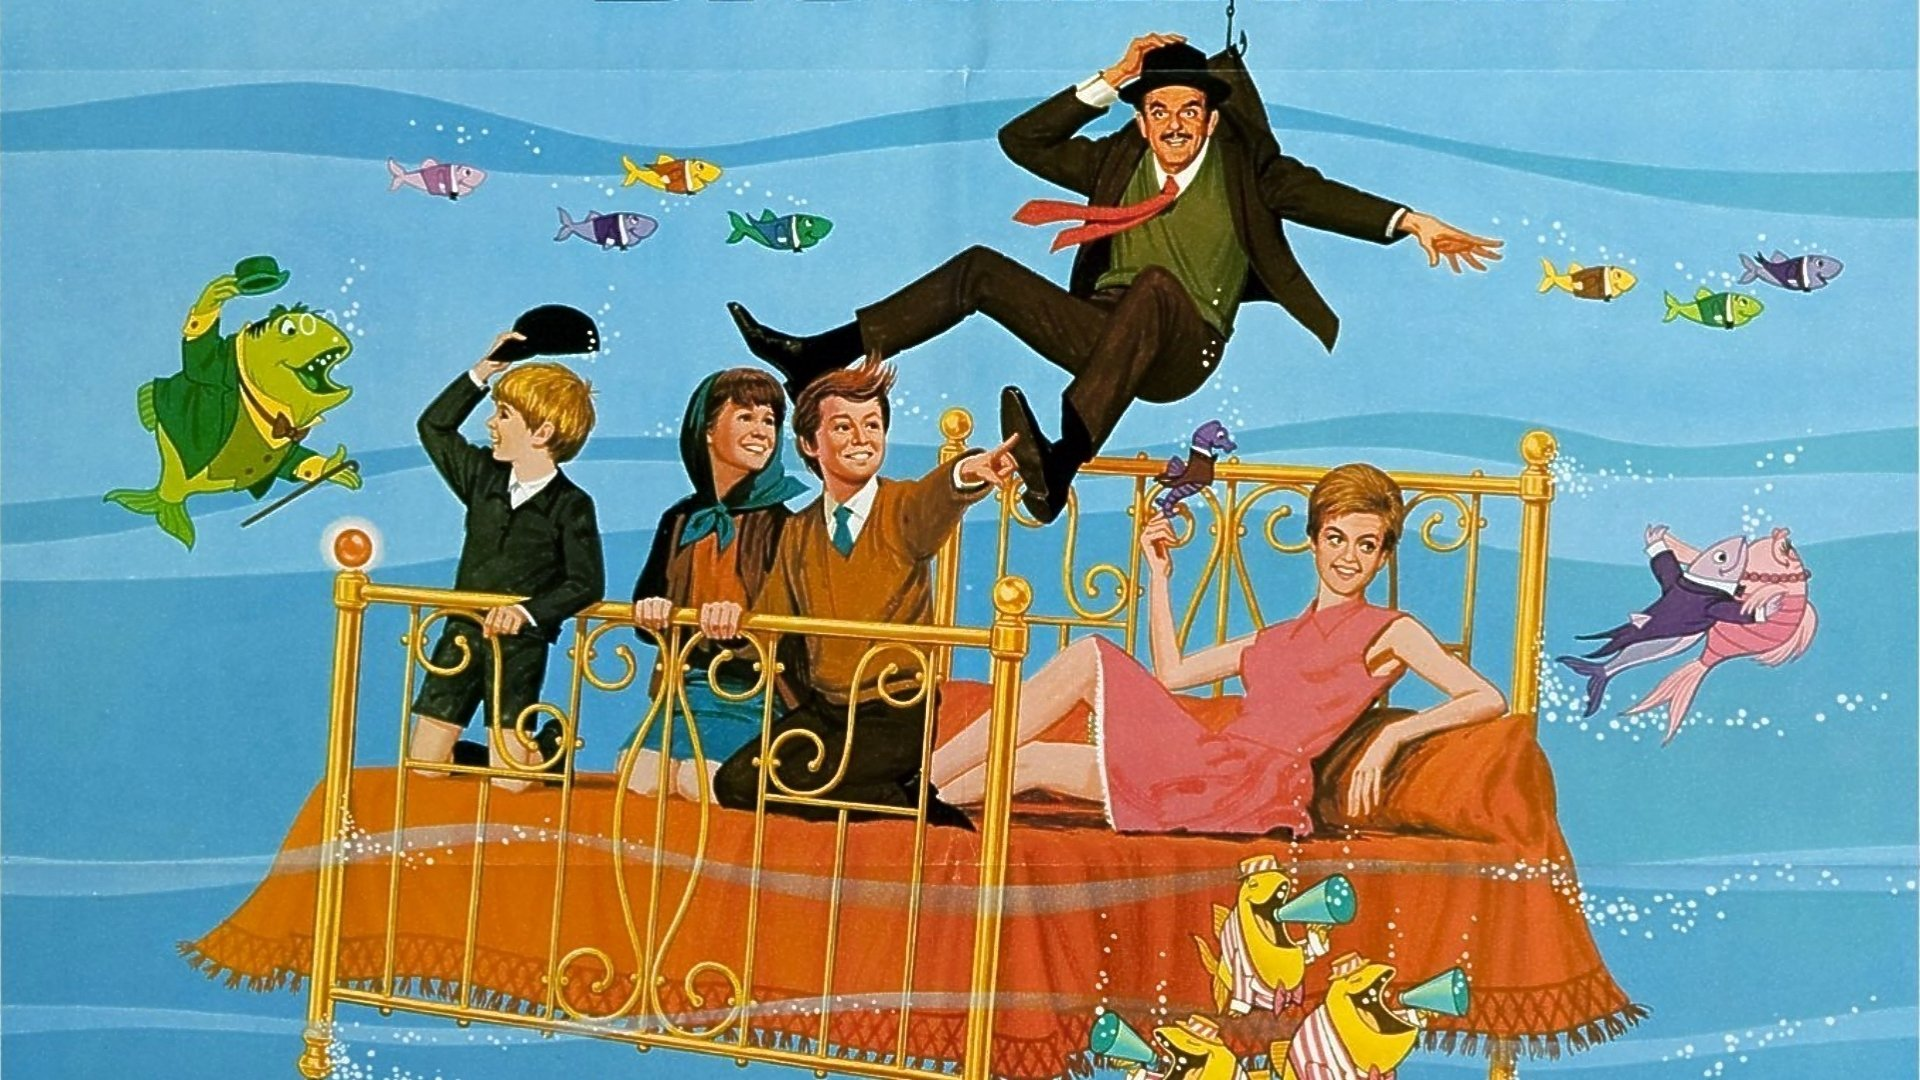 High Resolution Wallpaper | Bedknobs And Broomsticks 1920x1080 px